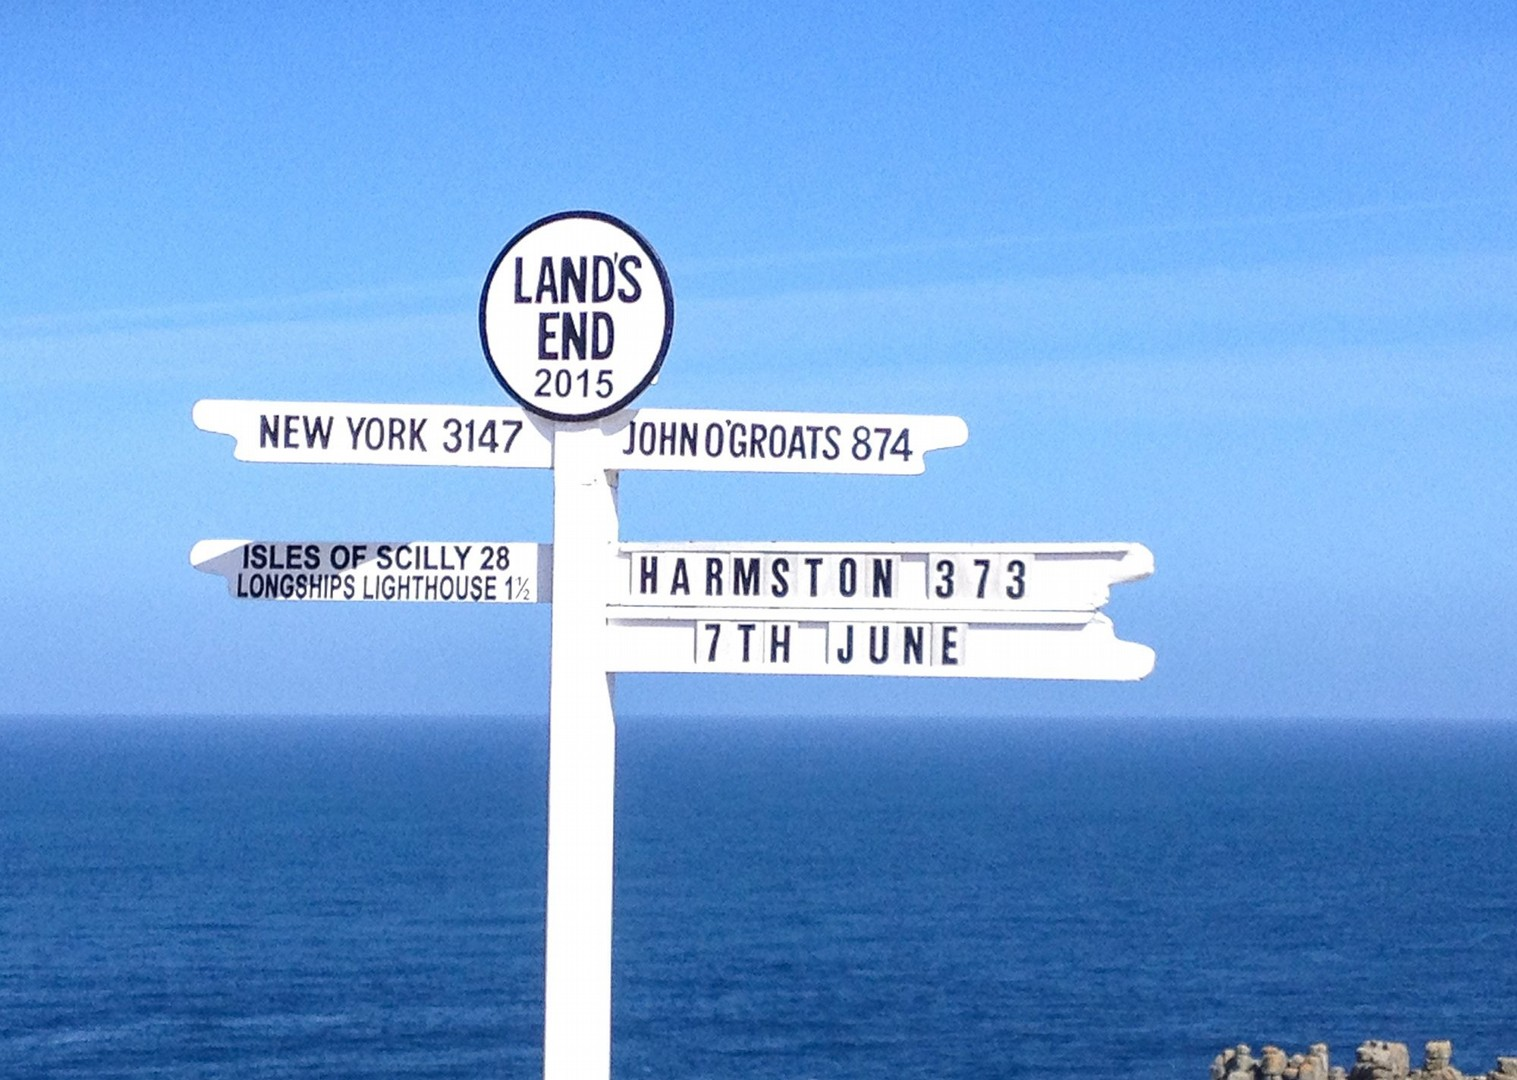 lejog-lands-end-to-john-ogroats-uk-cycling-holiday-guided-tour.jpg - UK - Land's End to John O'Groats Explorer (22 days) - Guided Cycling Holiday - Road Cycling